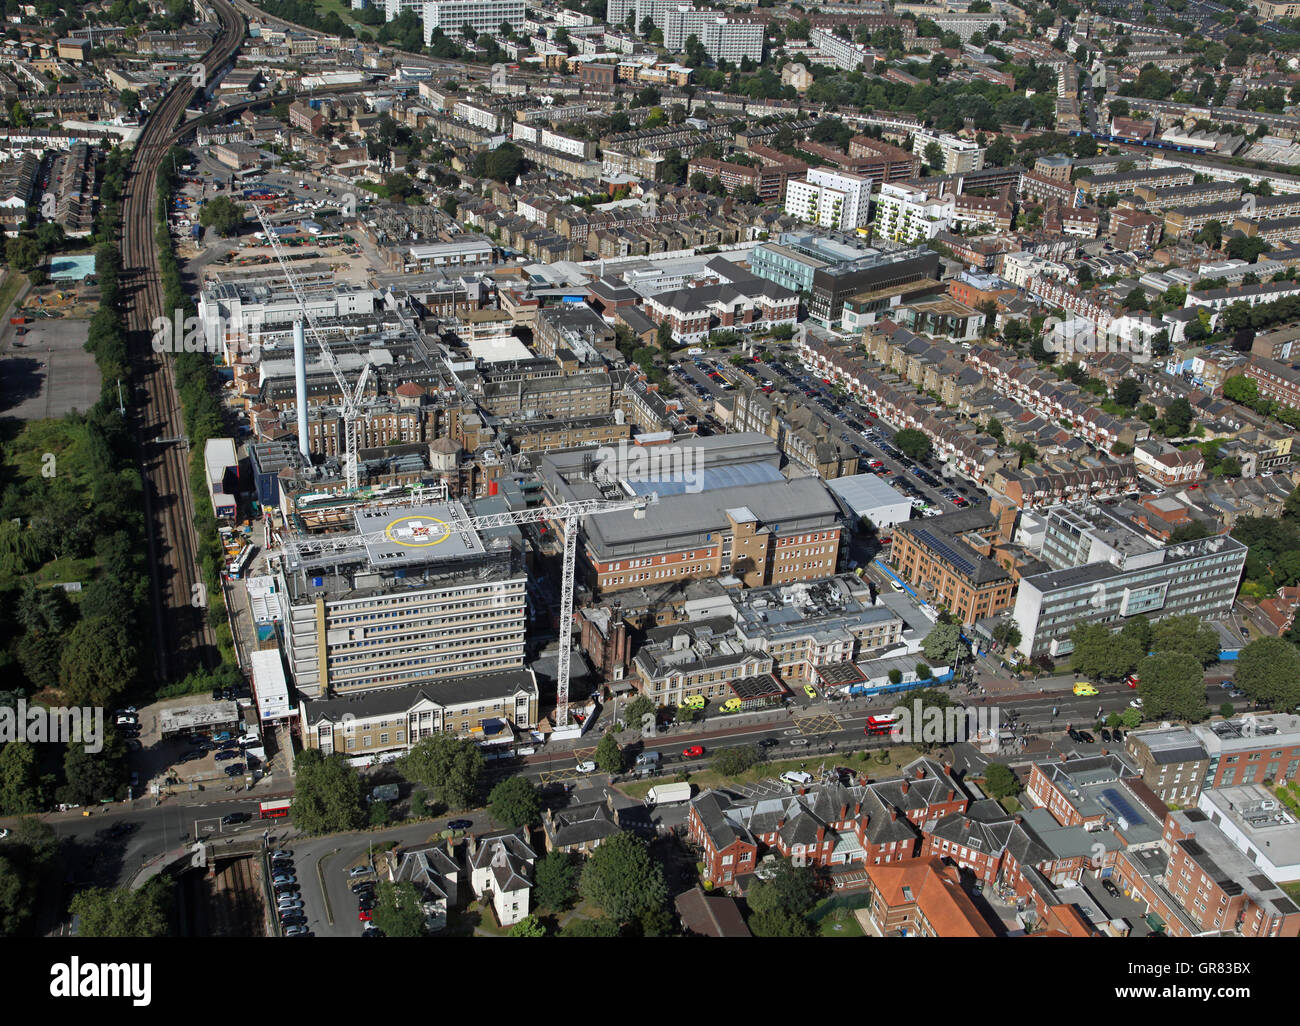 aerial view of Kings College Hospital KCH in Southwark, South London, UK - Stock Image